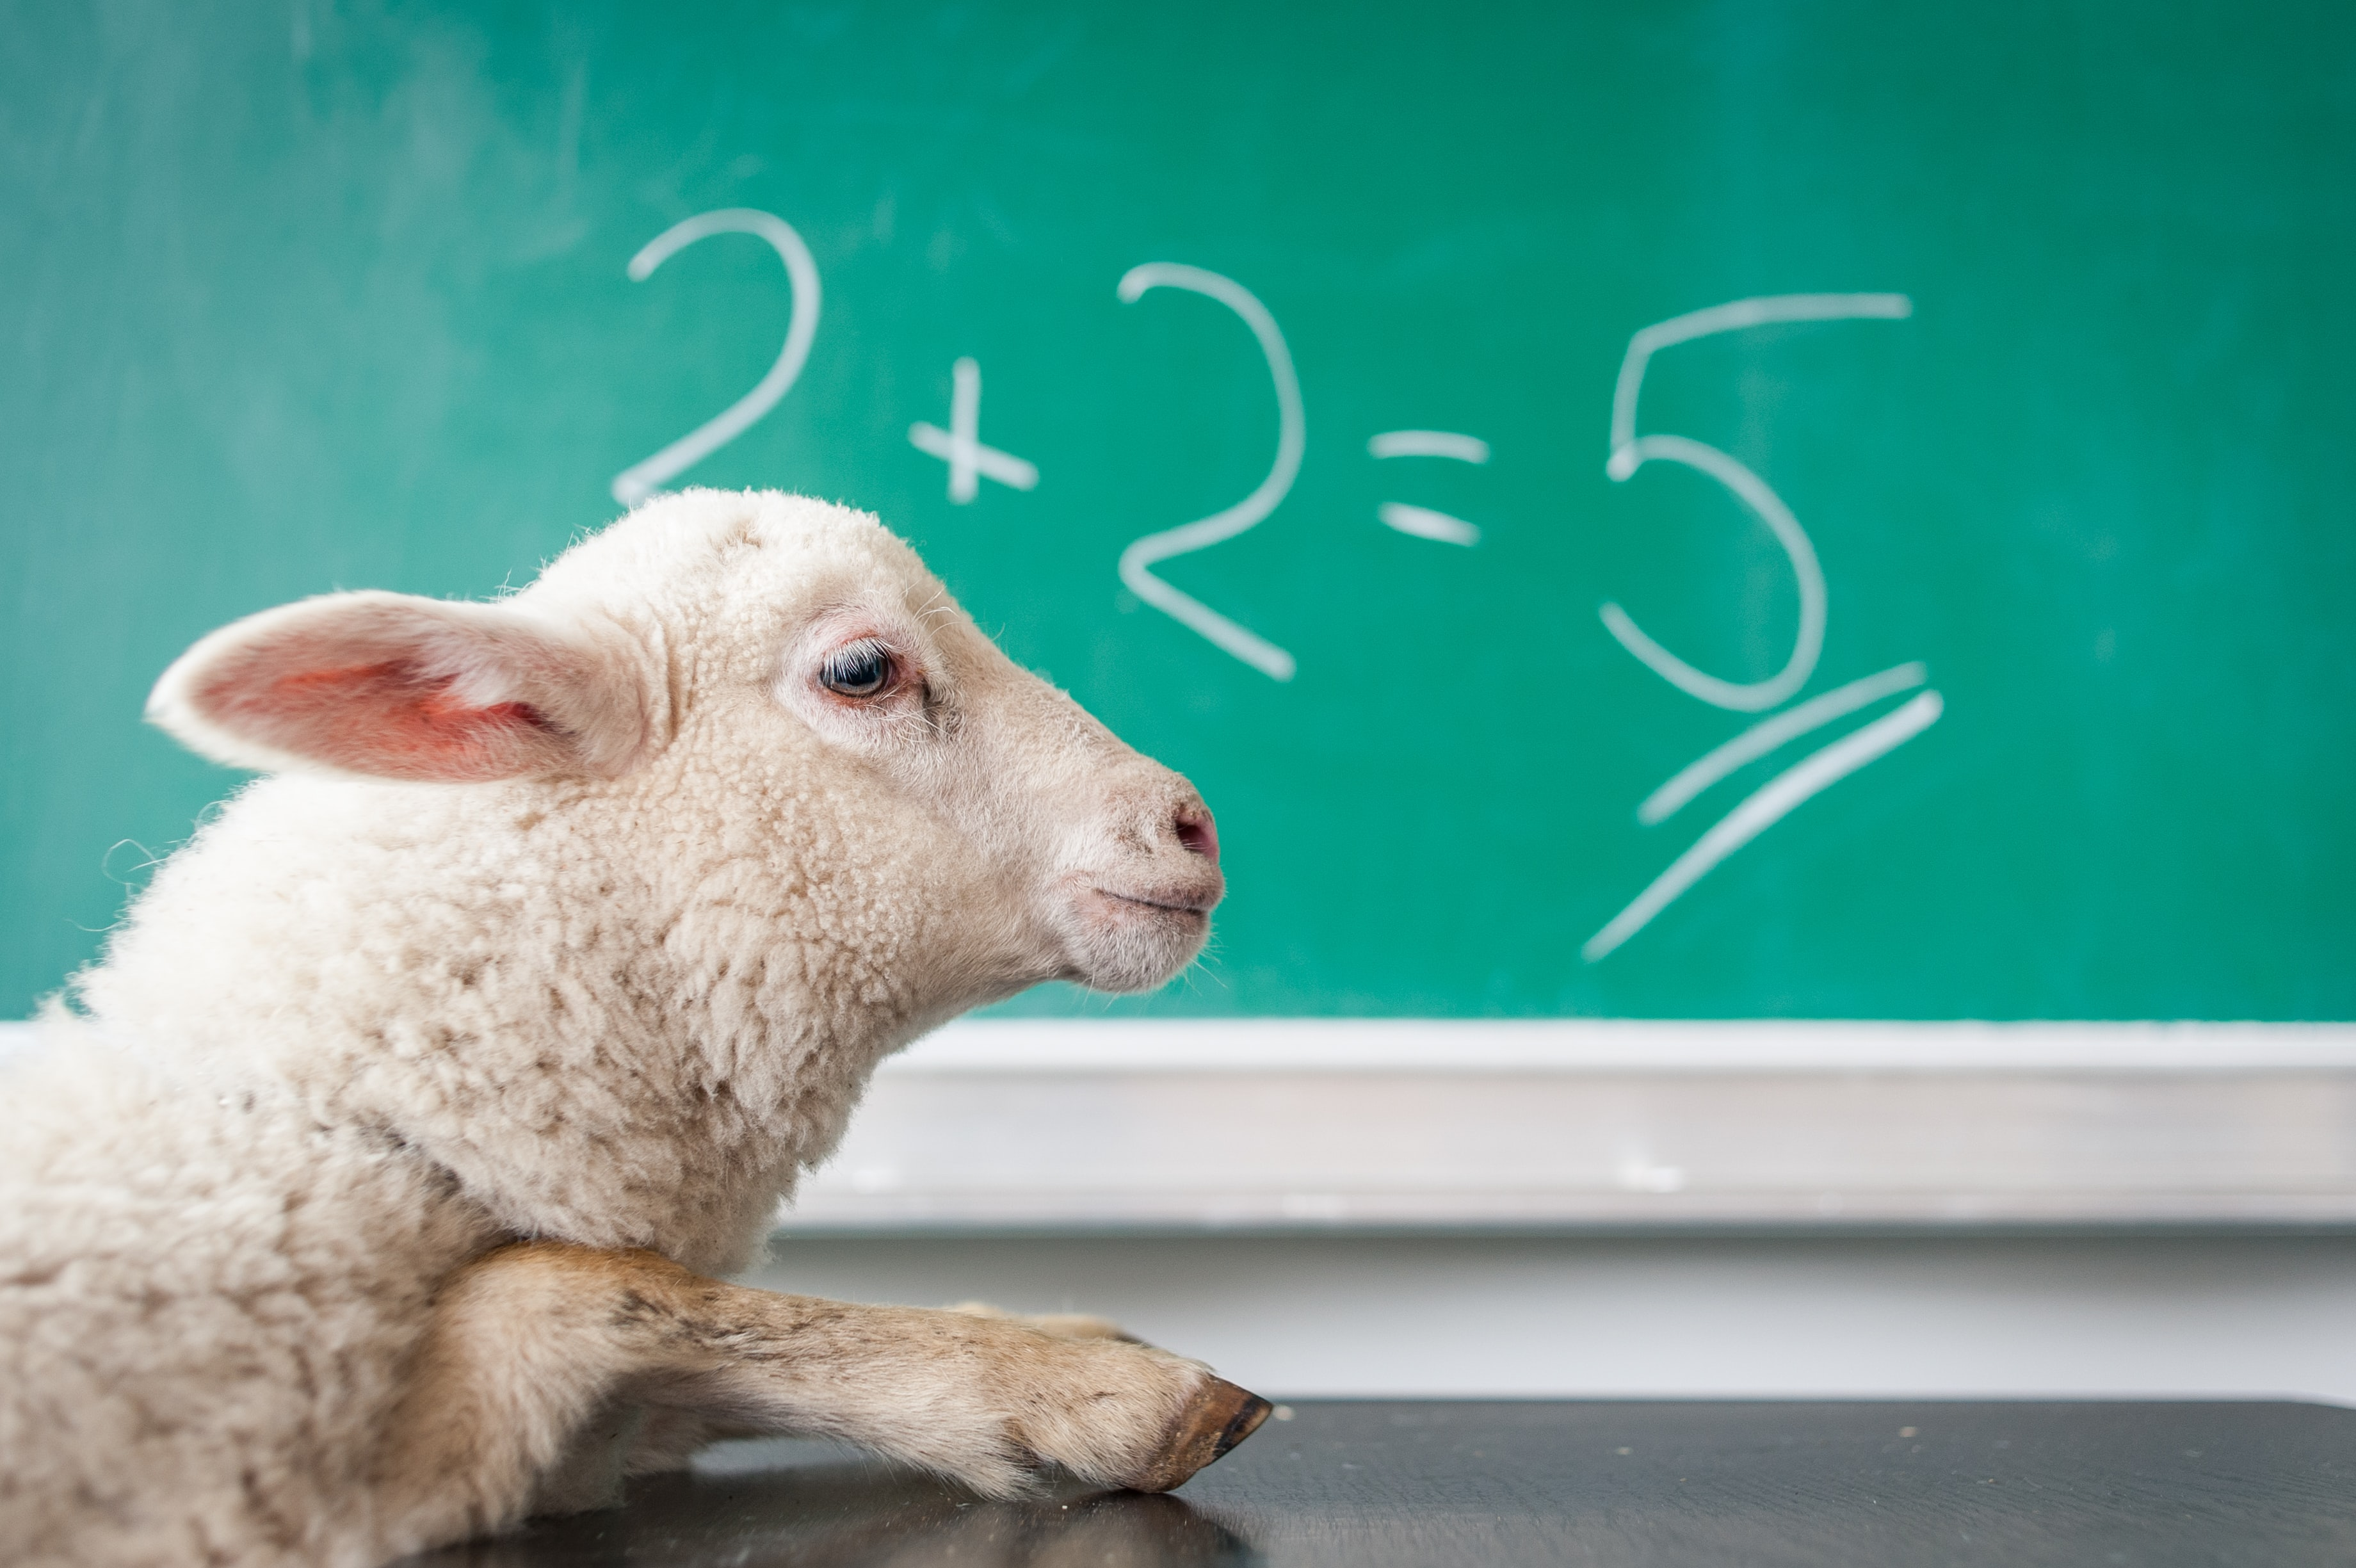 2+2=5 level of wrongness. I don't know what the lamb has to do with this, but I'm sure it's not at fault.